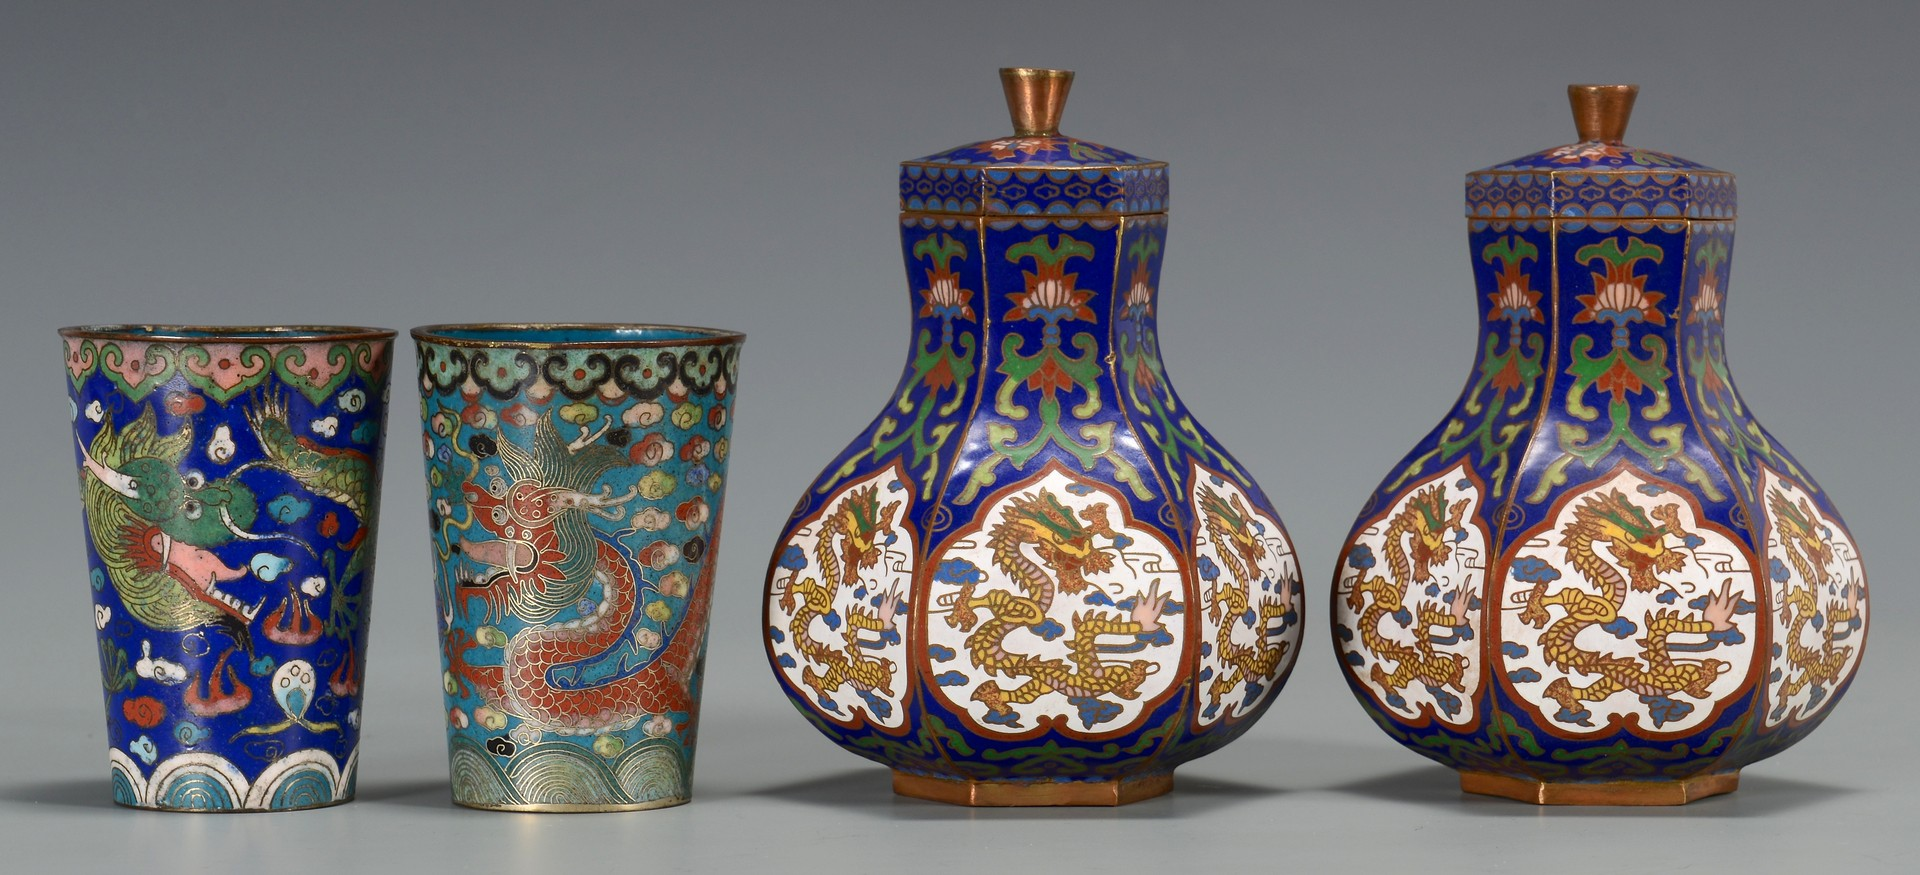 Lot 3594208: Group of 8 Cloisonne Items